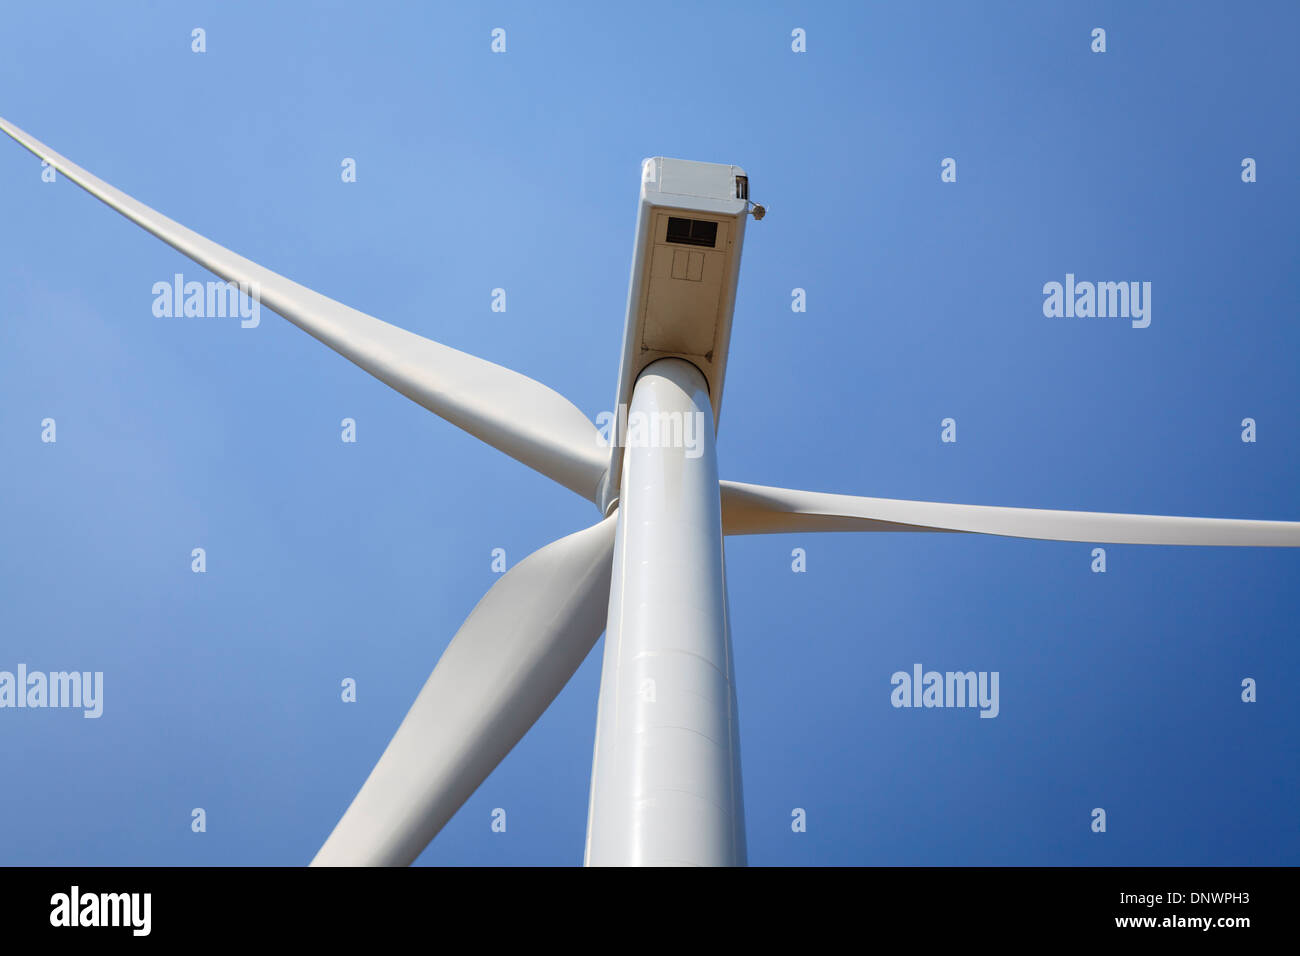 Wind turbine view from below. Lleida province. Catalonia. Spain. - Stock Image